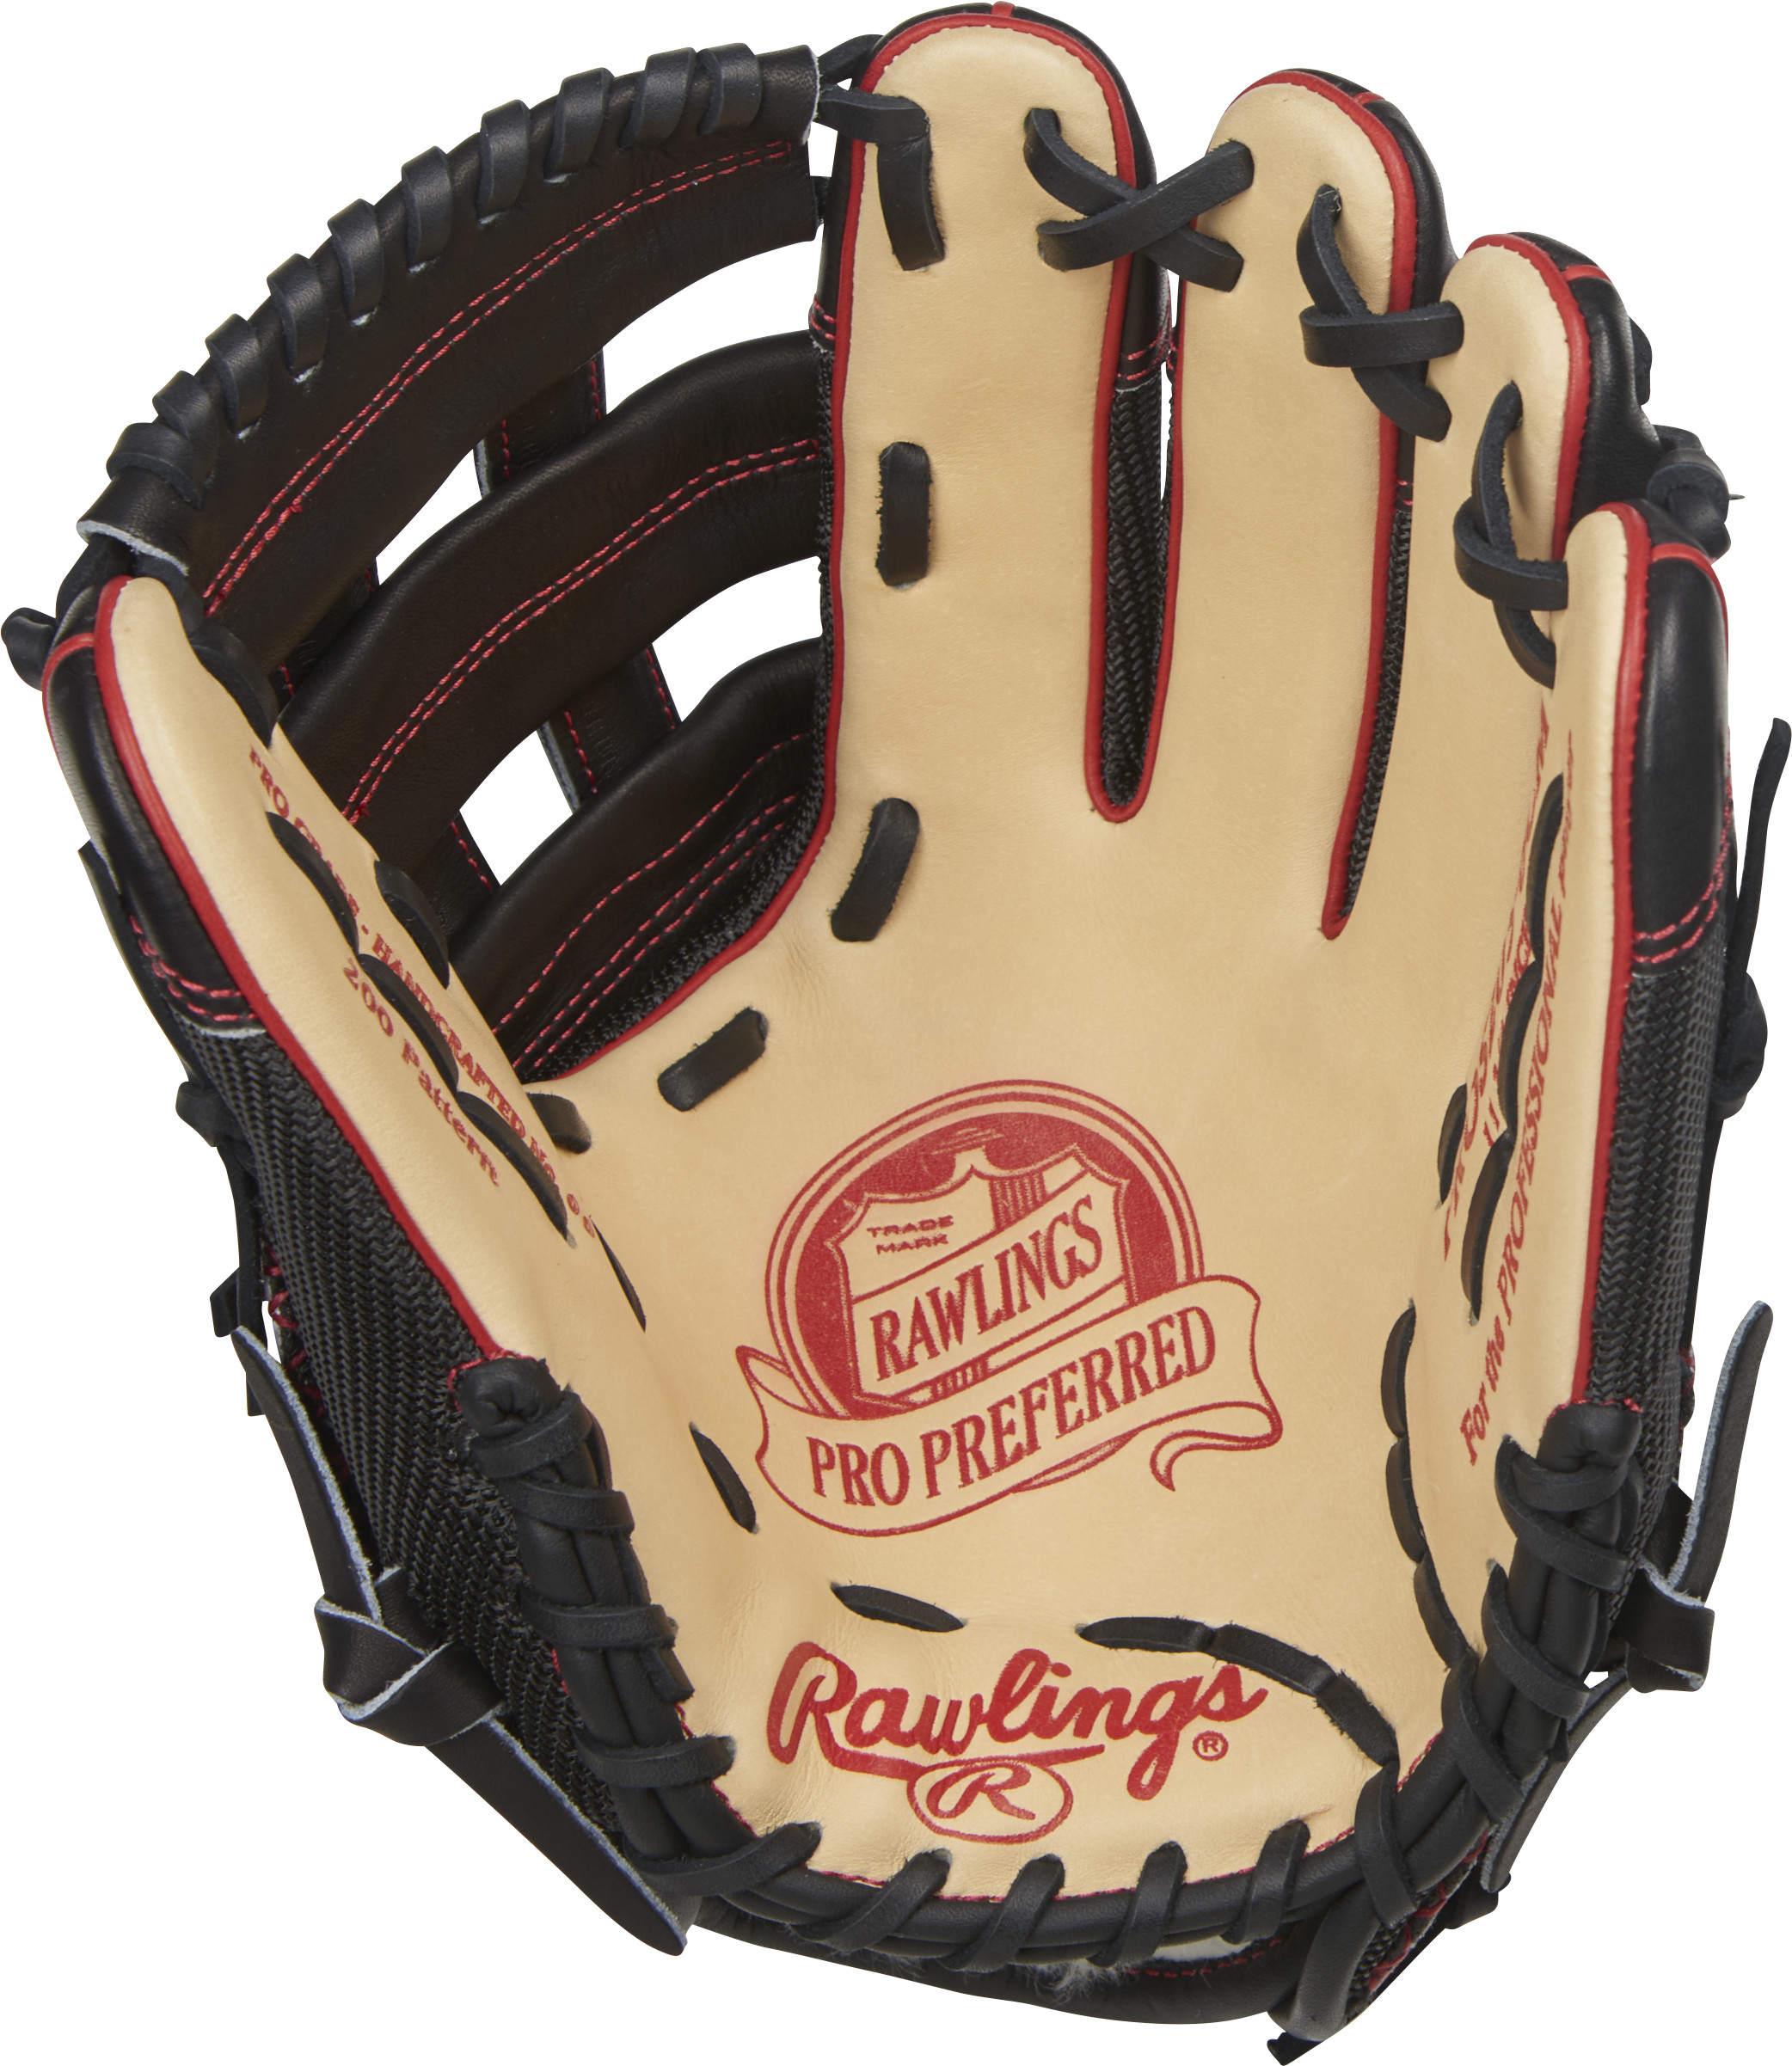 http://www.bestbatdeals.com/images/gloves/rawlings/PROS205-6CM-1.jpg